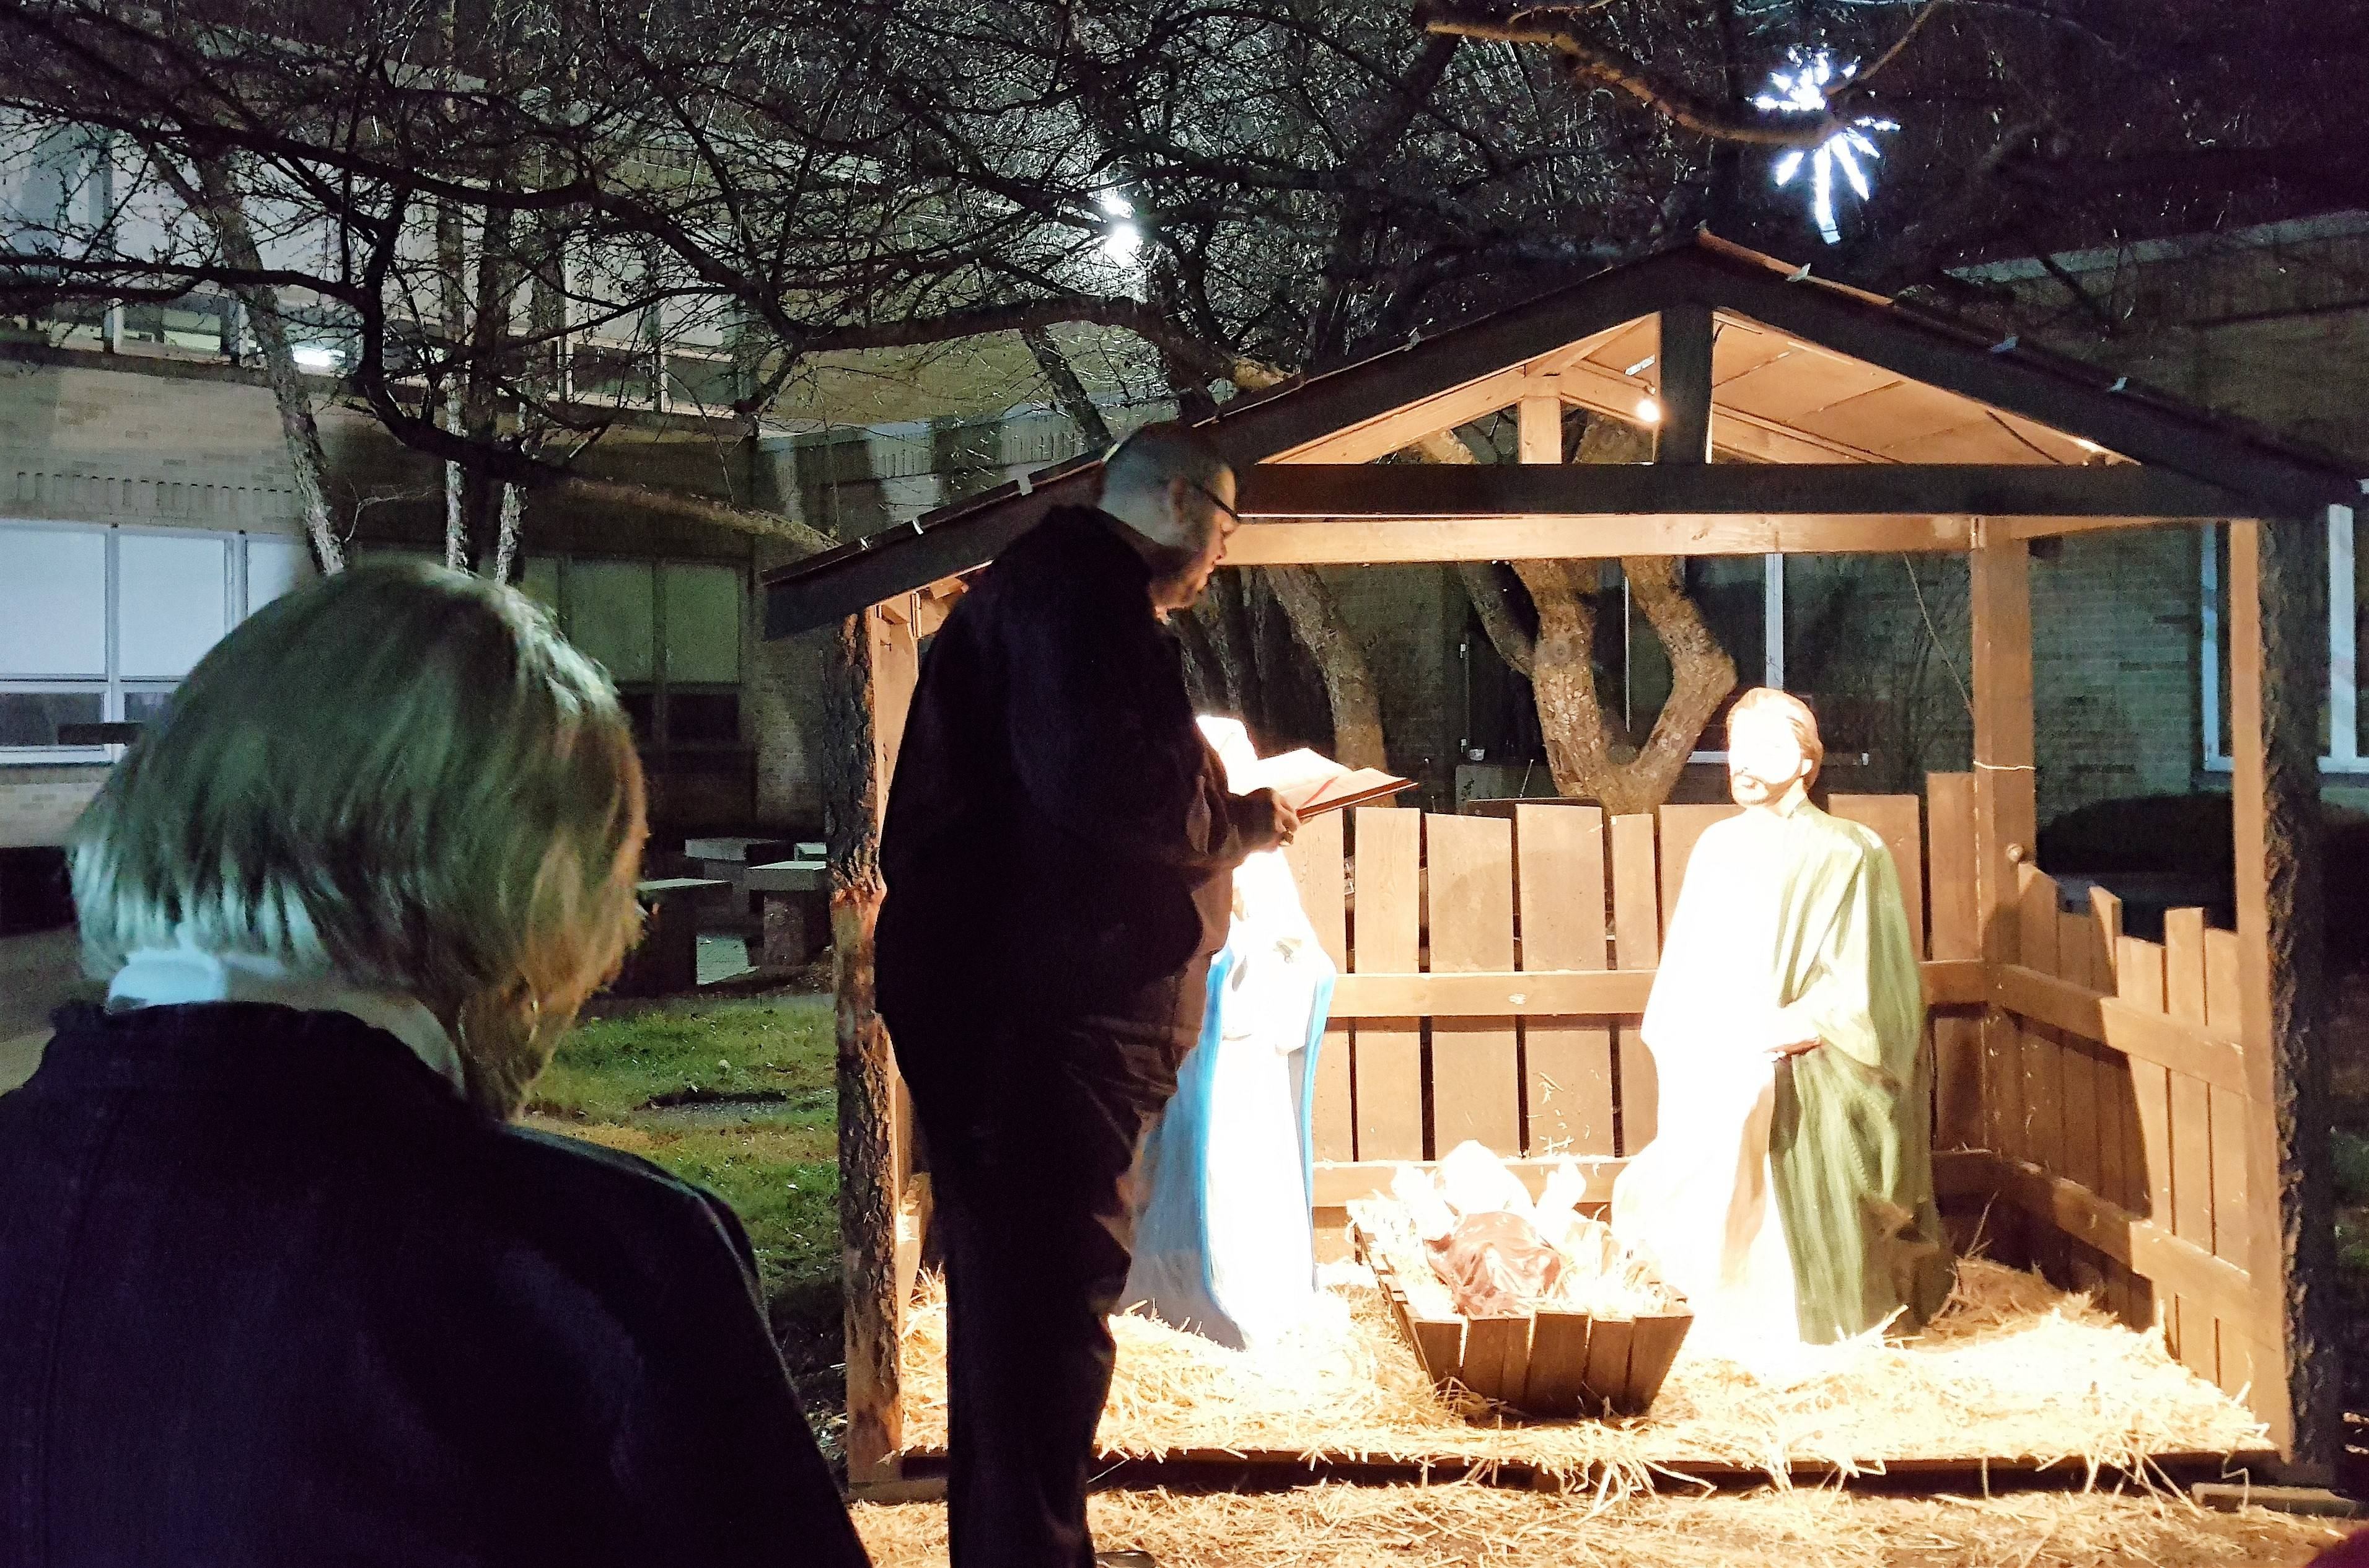 Father Matthew DeBlock, pastor of St. Catherine of Siena Church in West Dundee, blesses the Nativity scene outside the church.